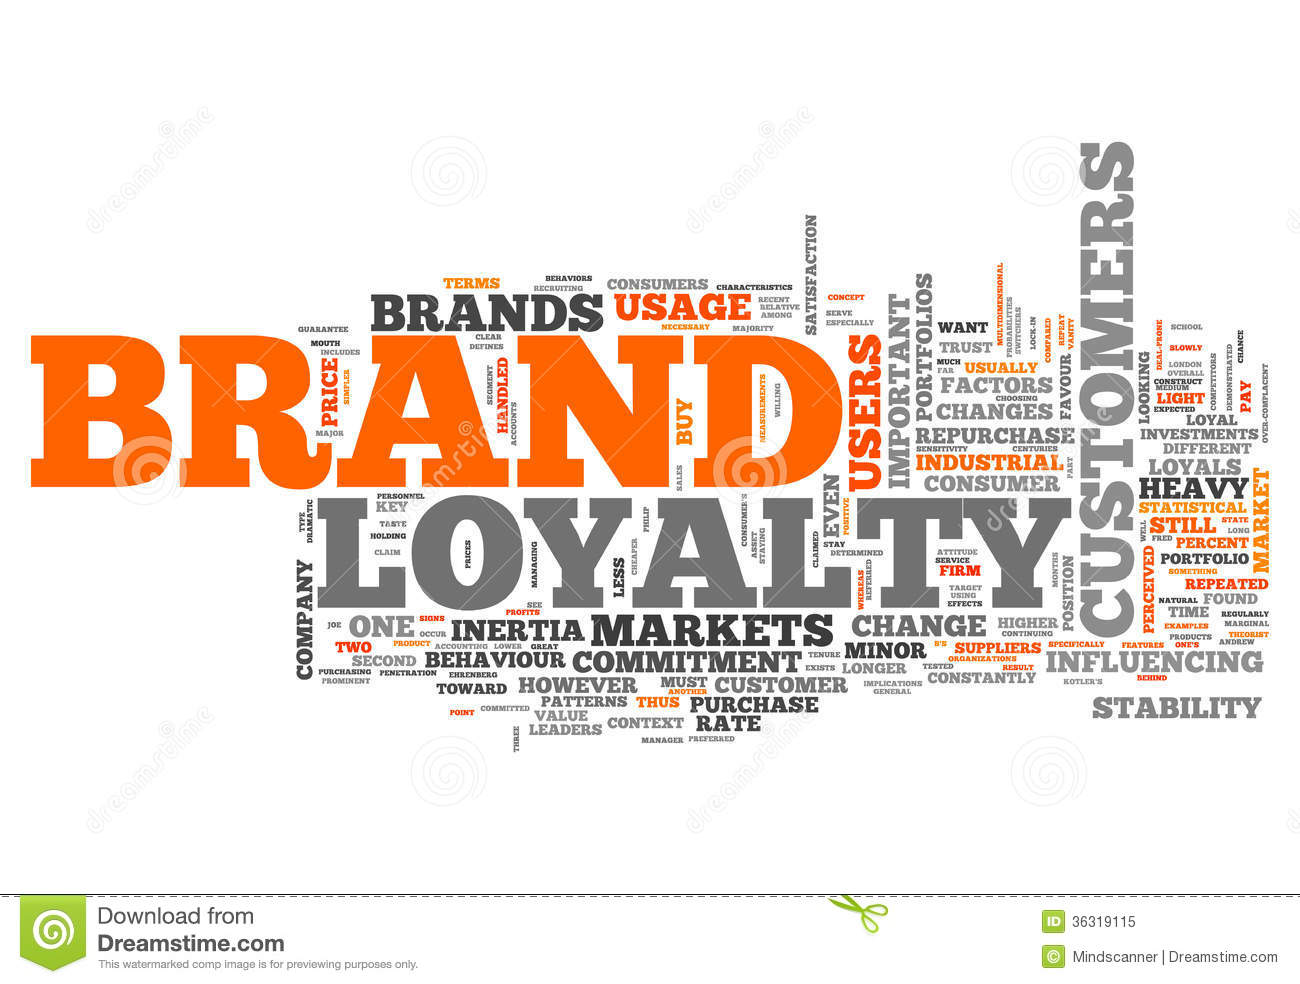 challenging the notions of loyalty in state Brand loyalty is the notion (or hope) that once consumers identify strongly with a particular brand or product, like a car or computer, they'll stick with that brand or maker when it comes time to buy new products.